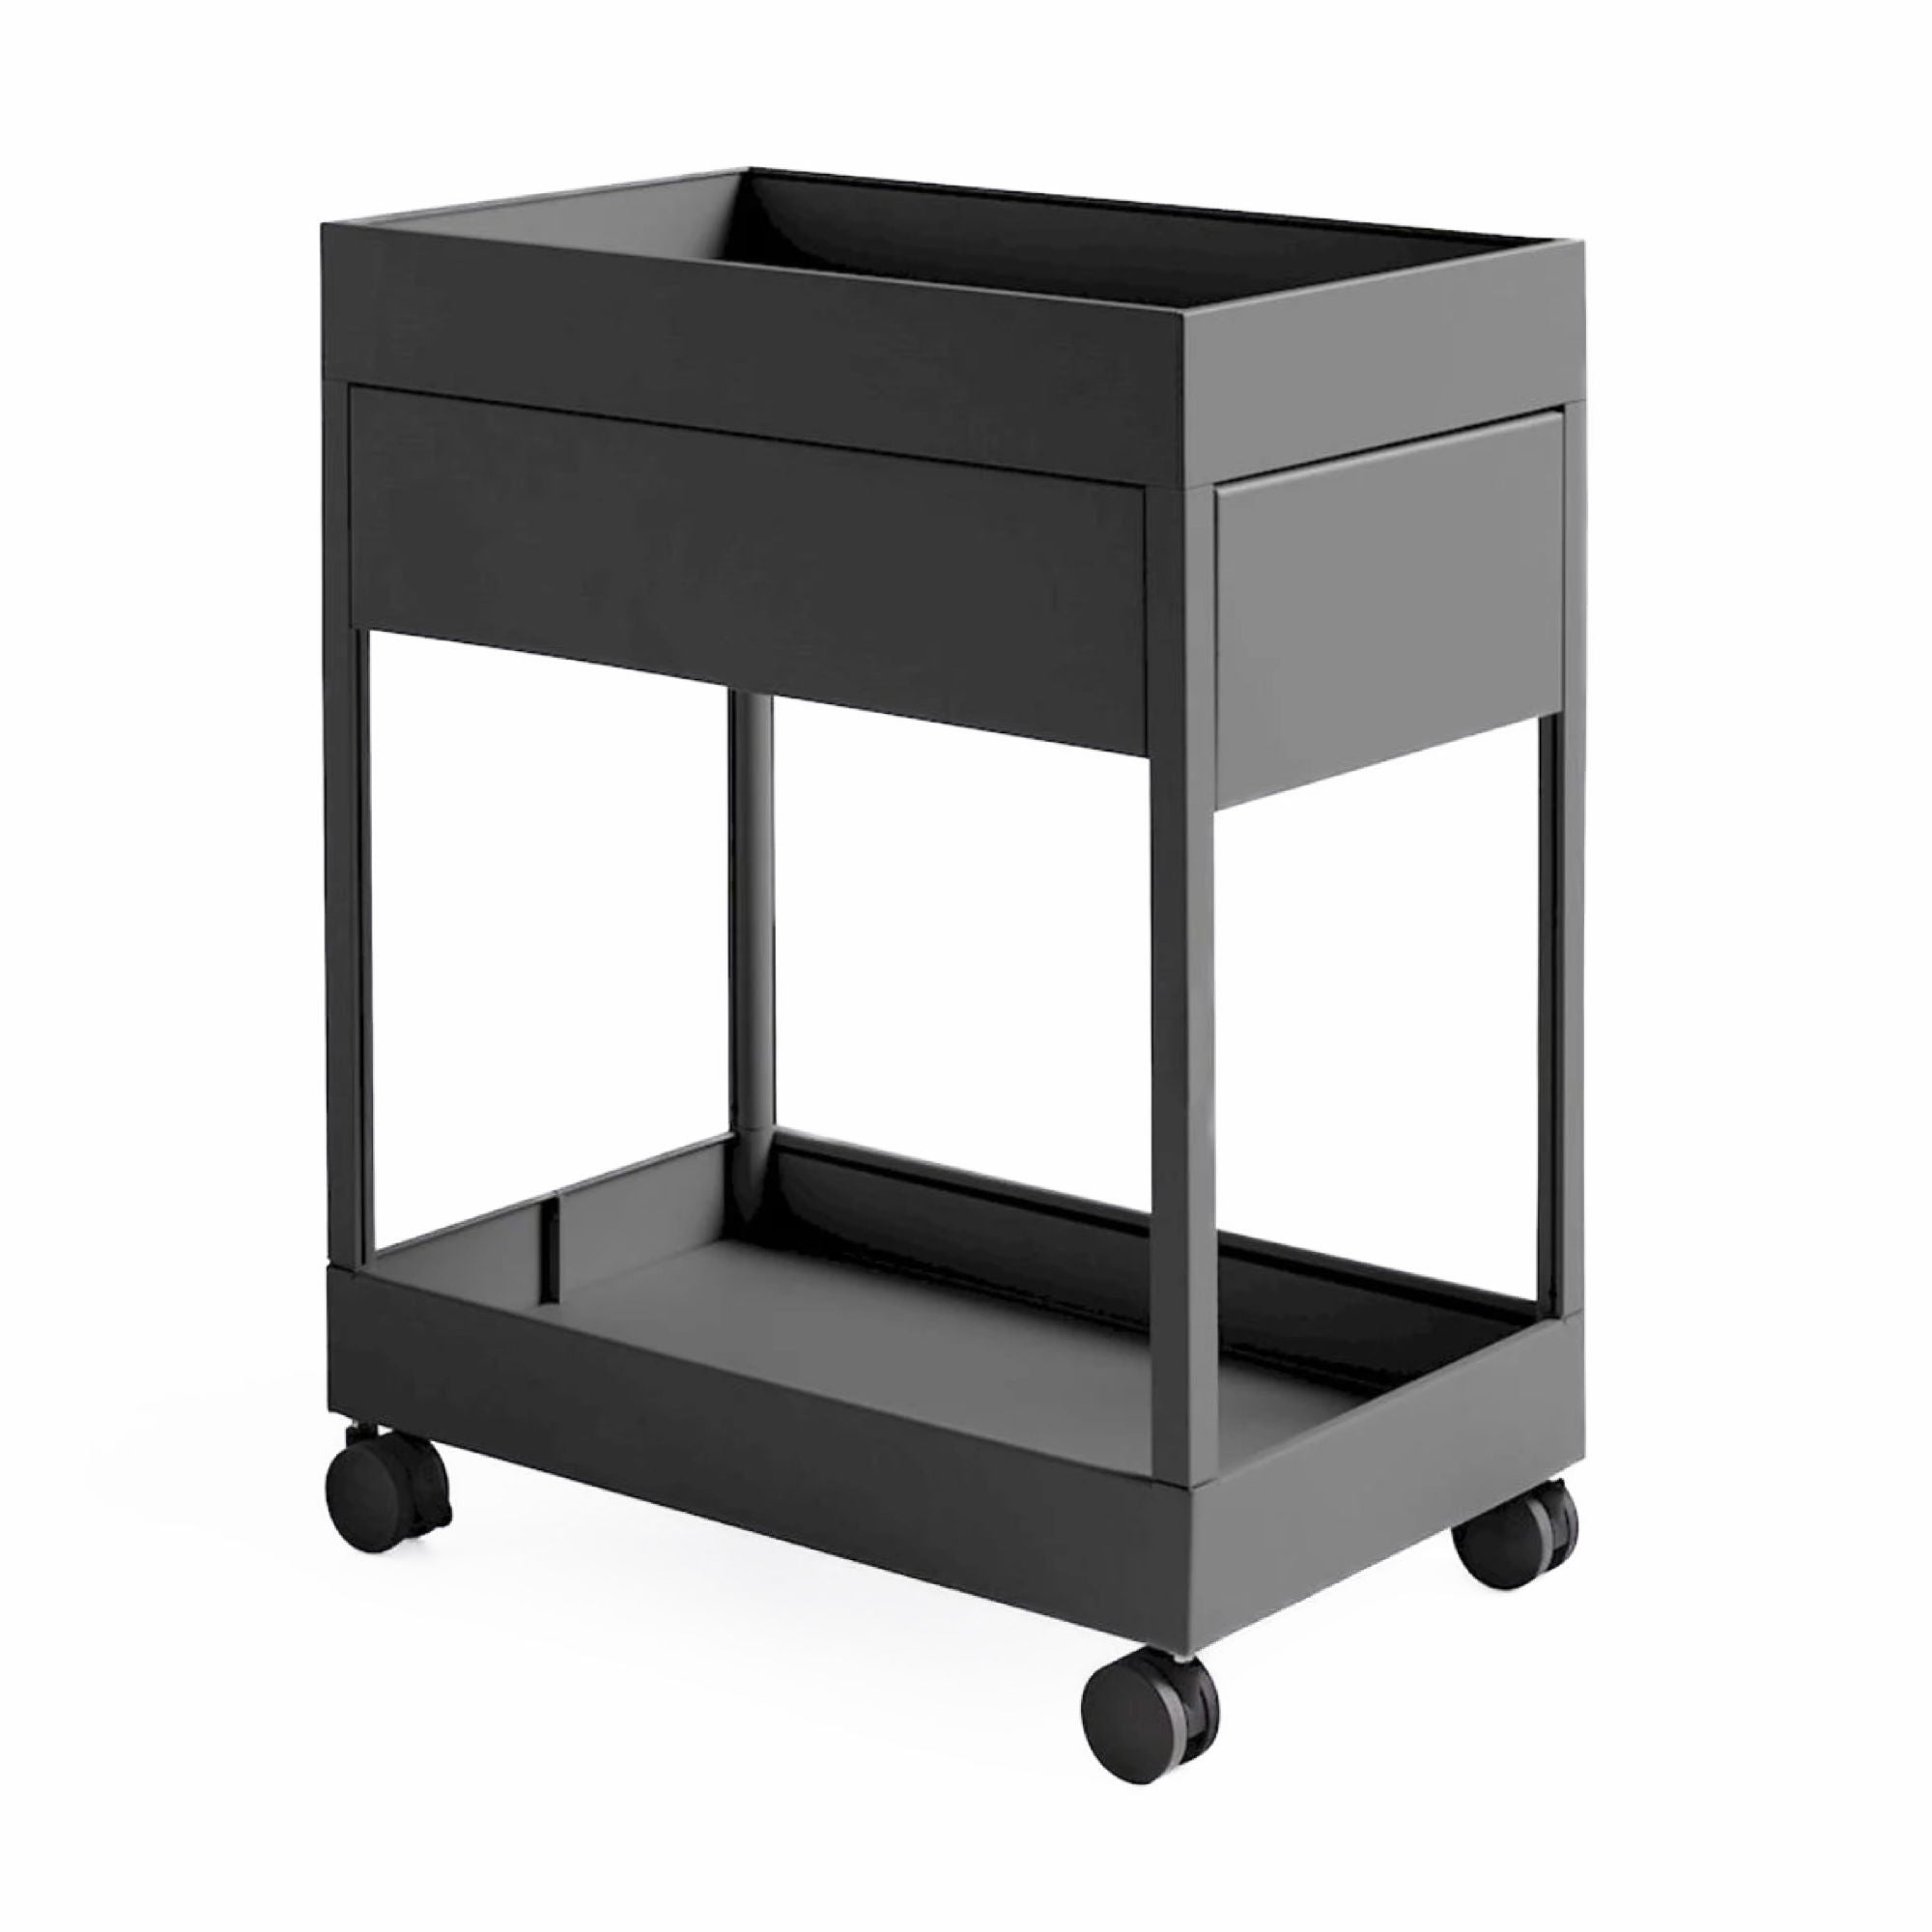 HAY New Order Trolley A , Charcoal